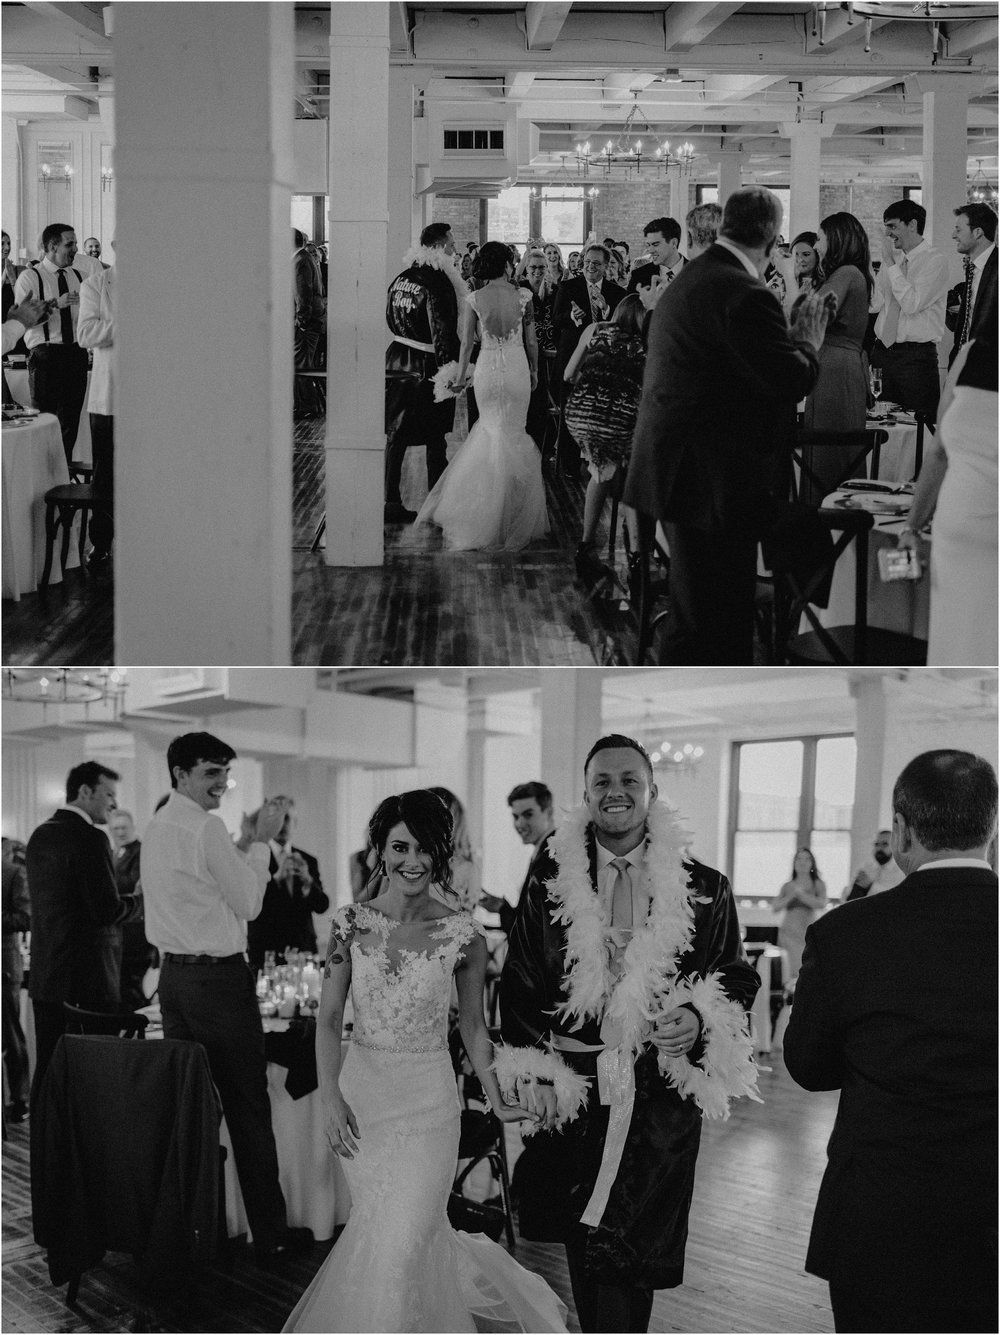 Bride and groom walk through their guests to their head table